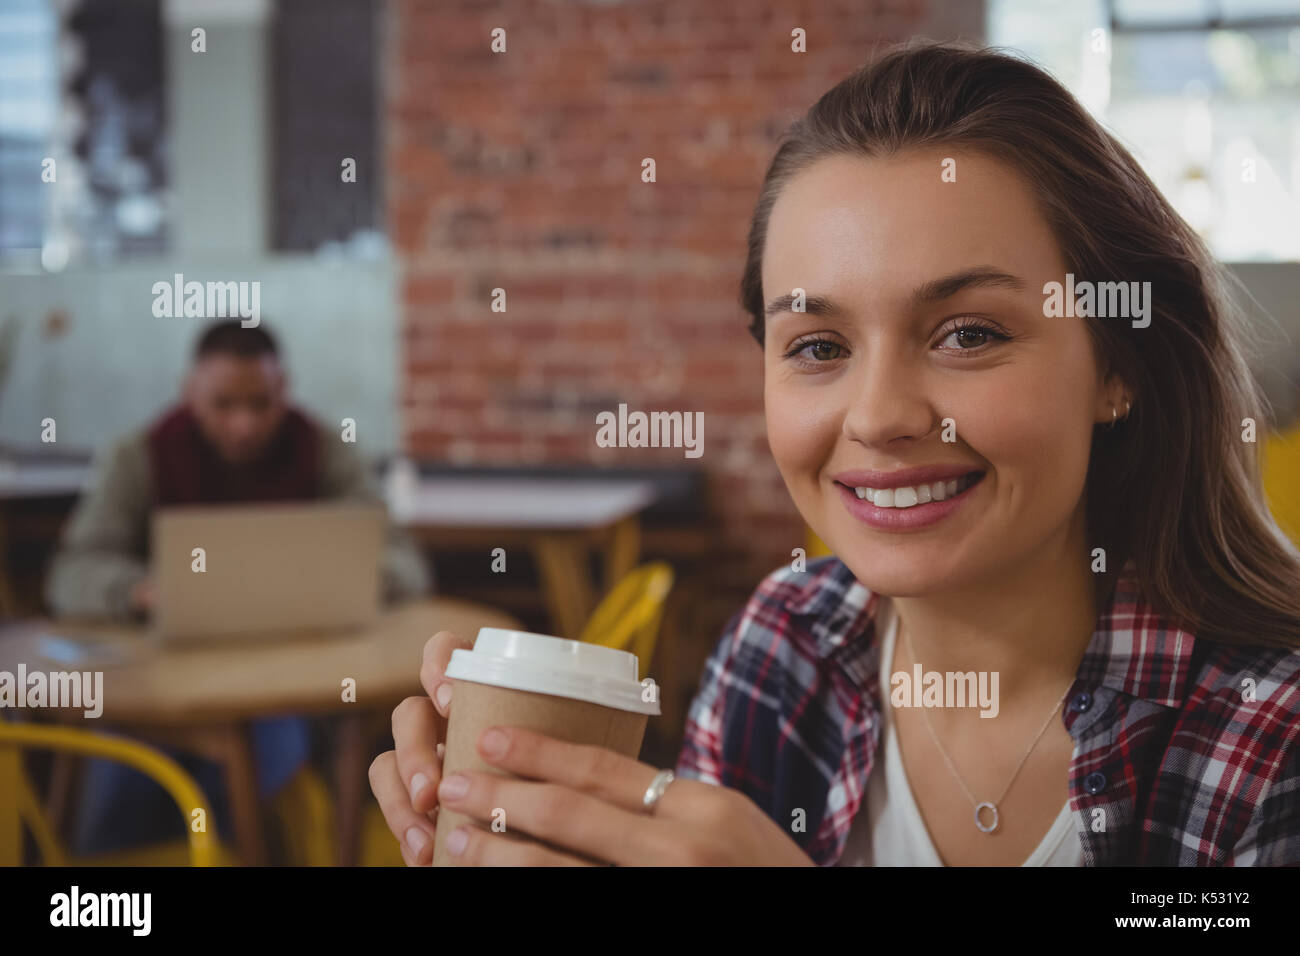 Portrait of happy young woman holding coffee cup at cafe Stock Photo